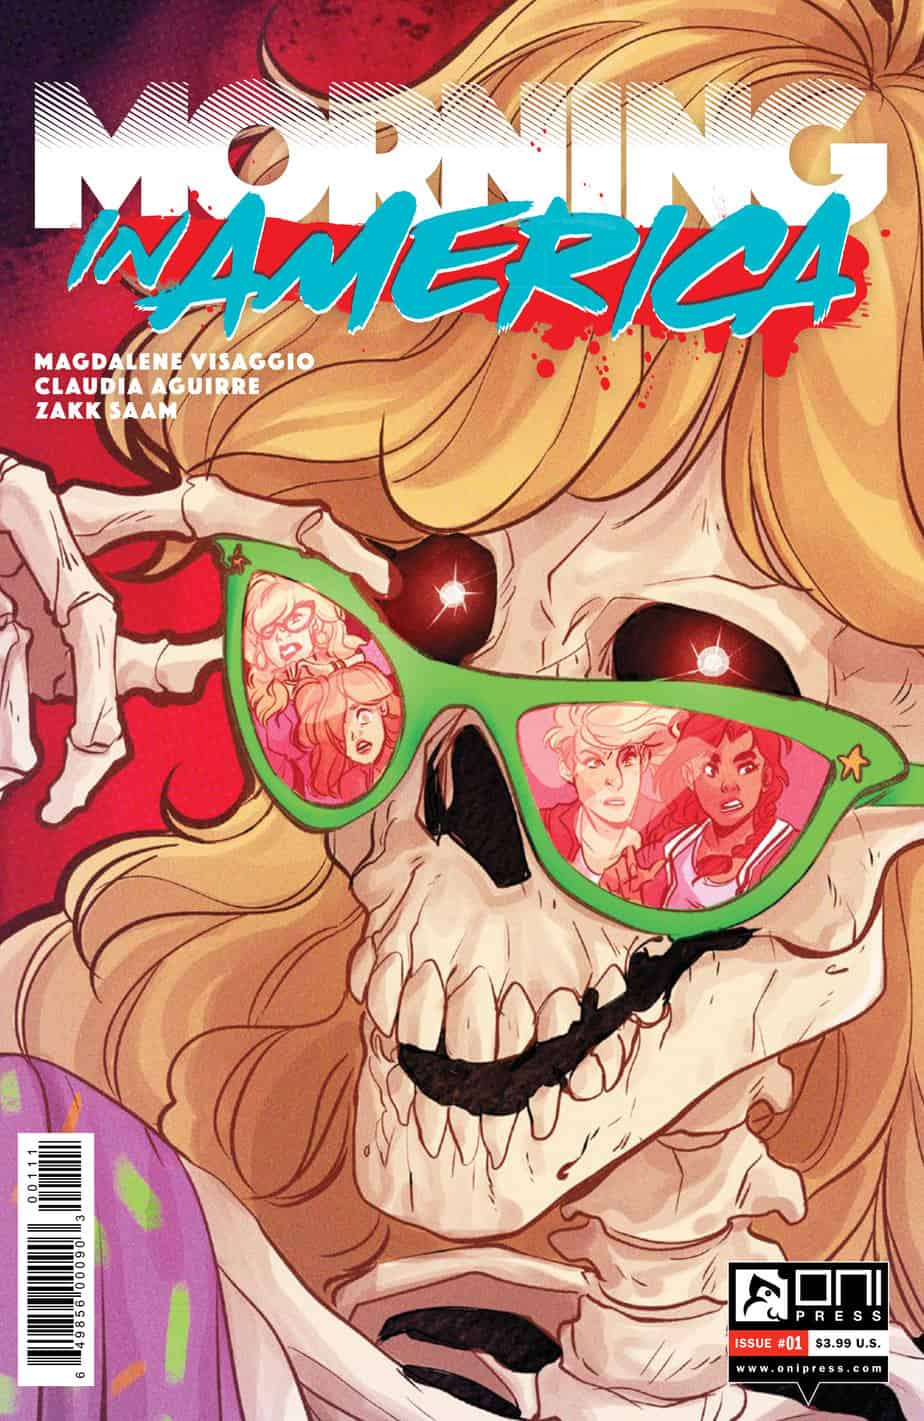 MORNING IN AMERICA #1 - Cover A